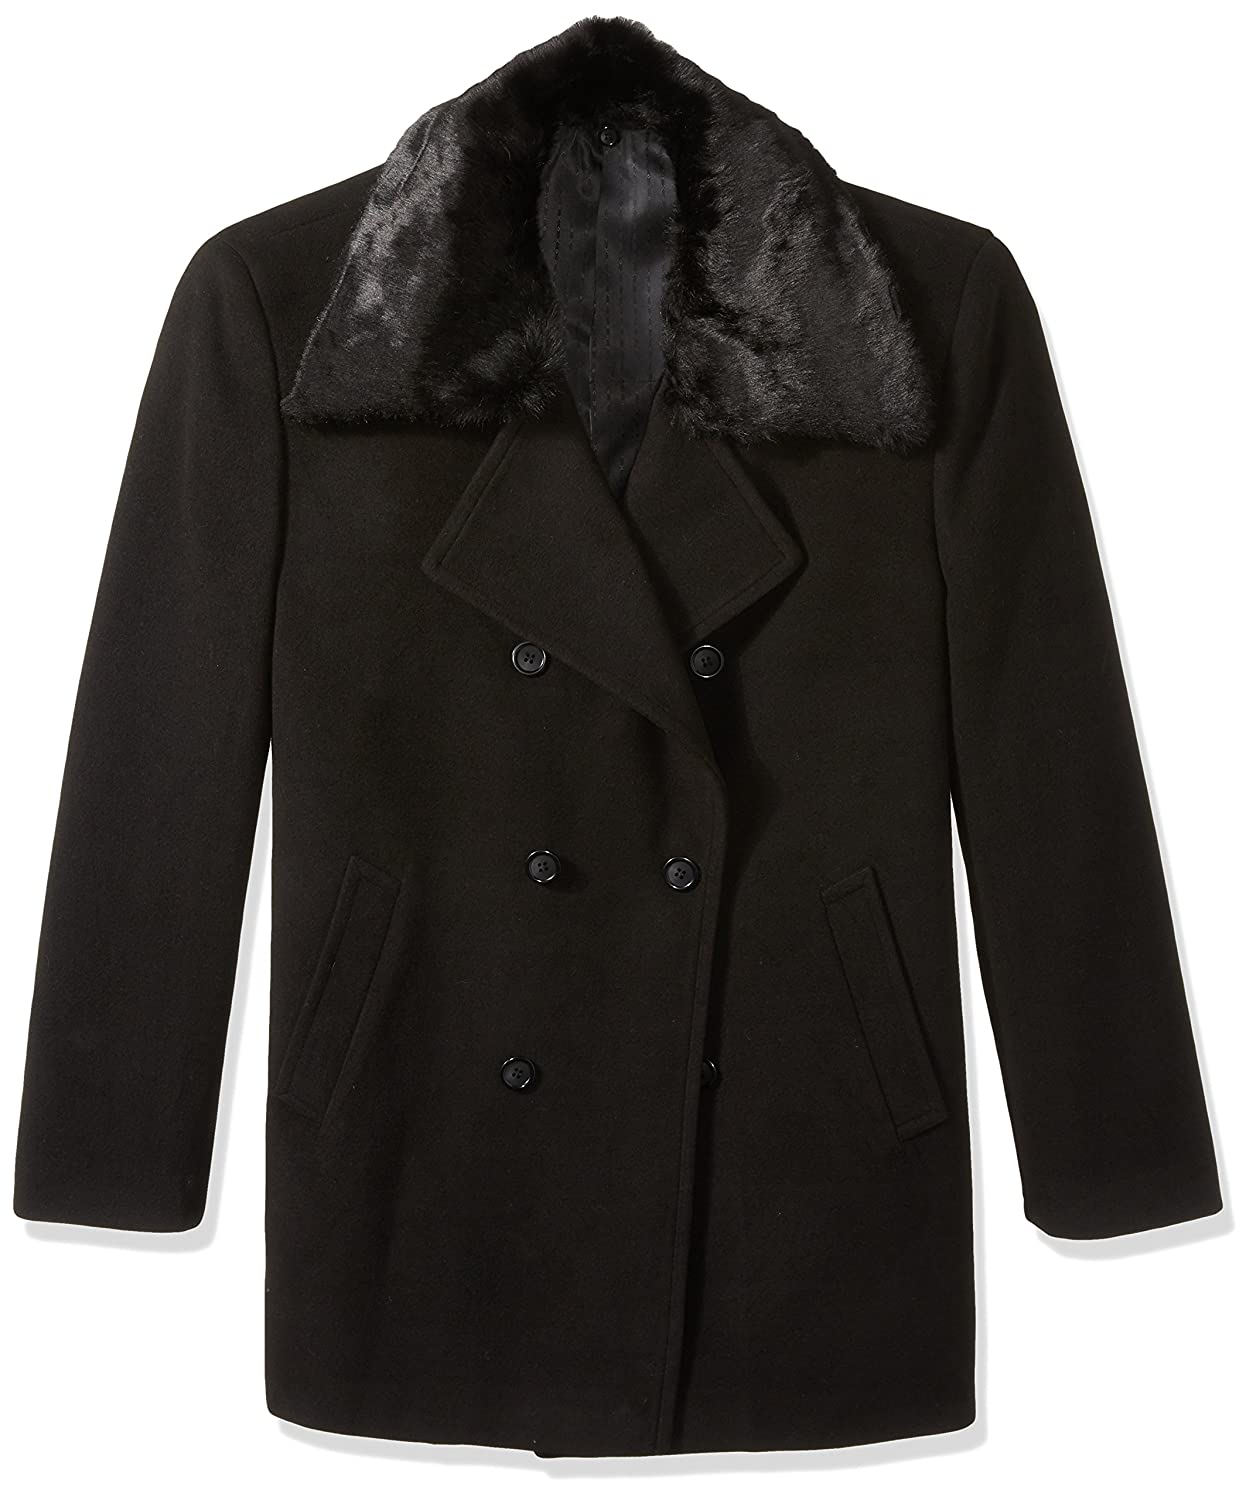 STACY ADAMS Men's Big & Tall Zoro Double Breasted 34 Inch Topcoat 4150-ZORROTCBT